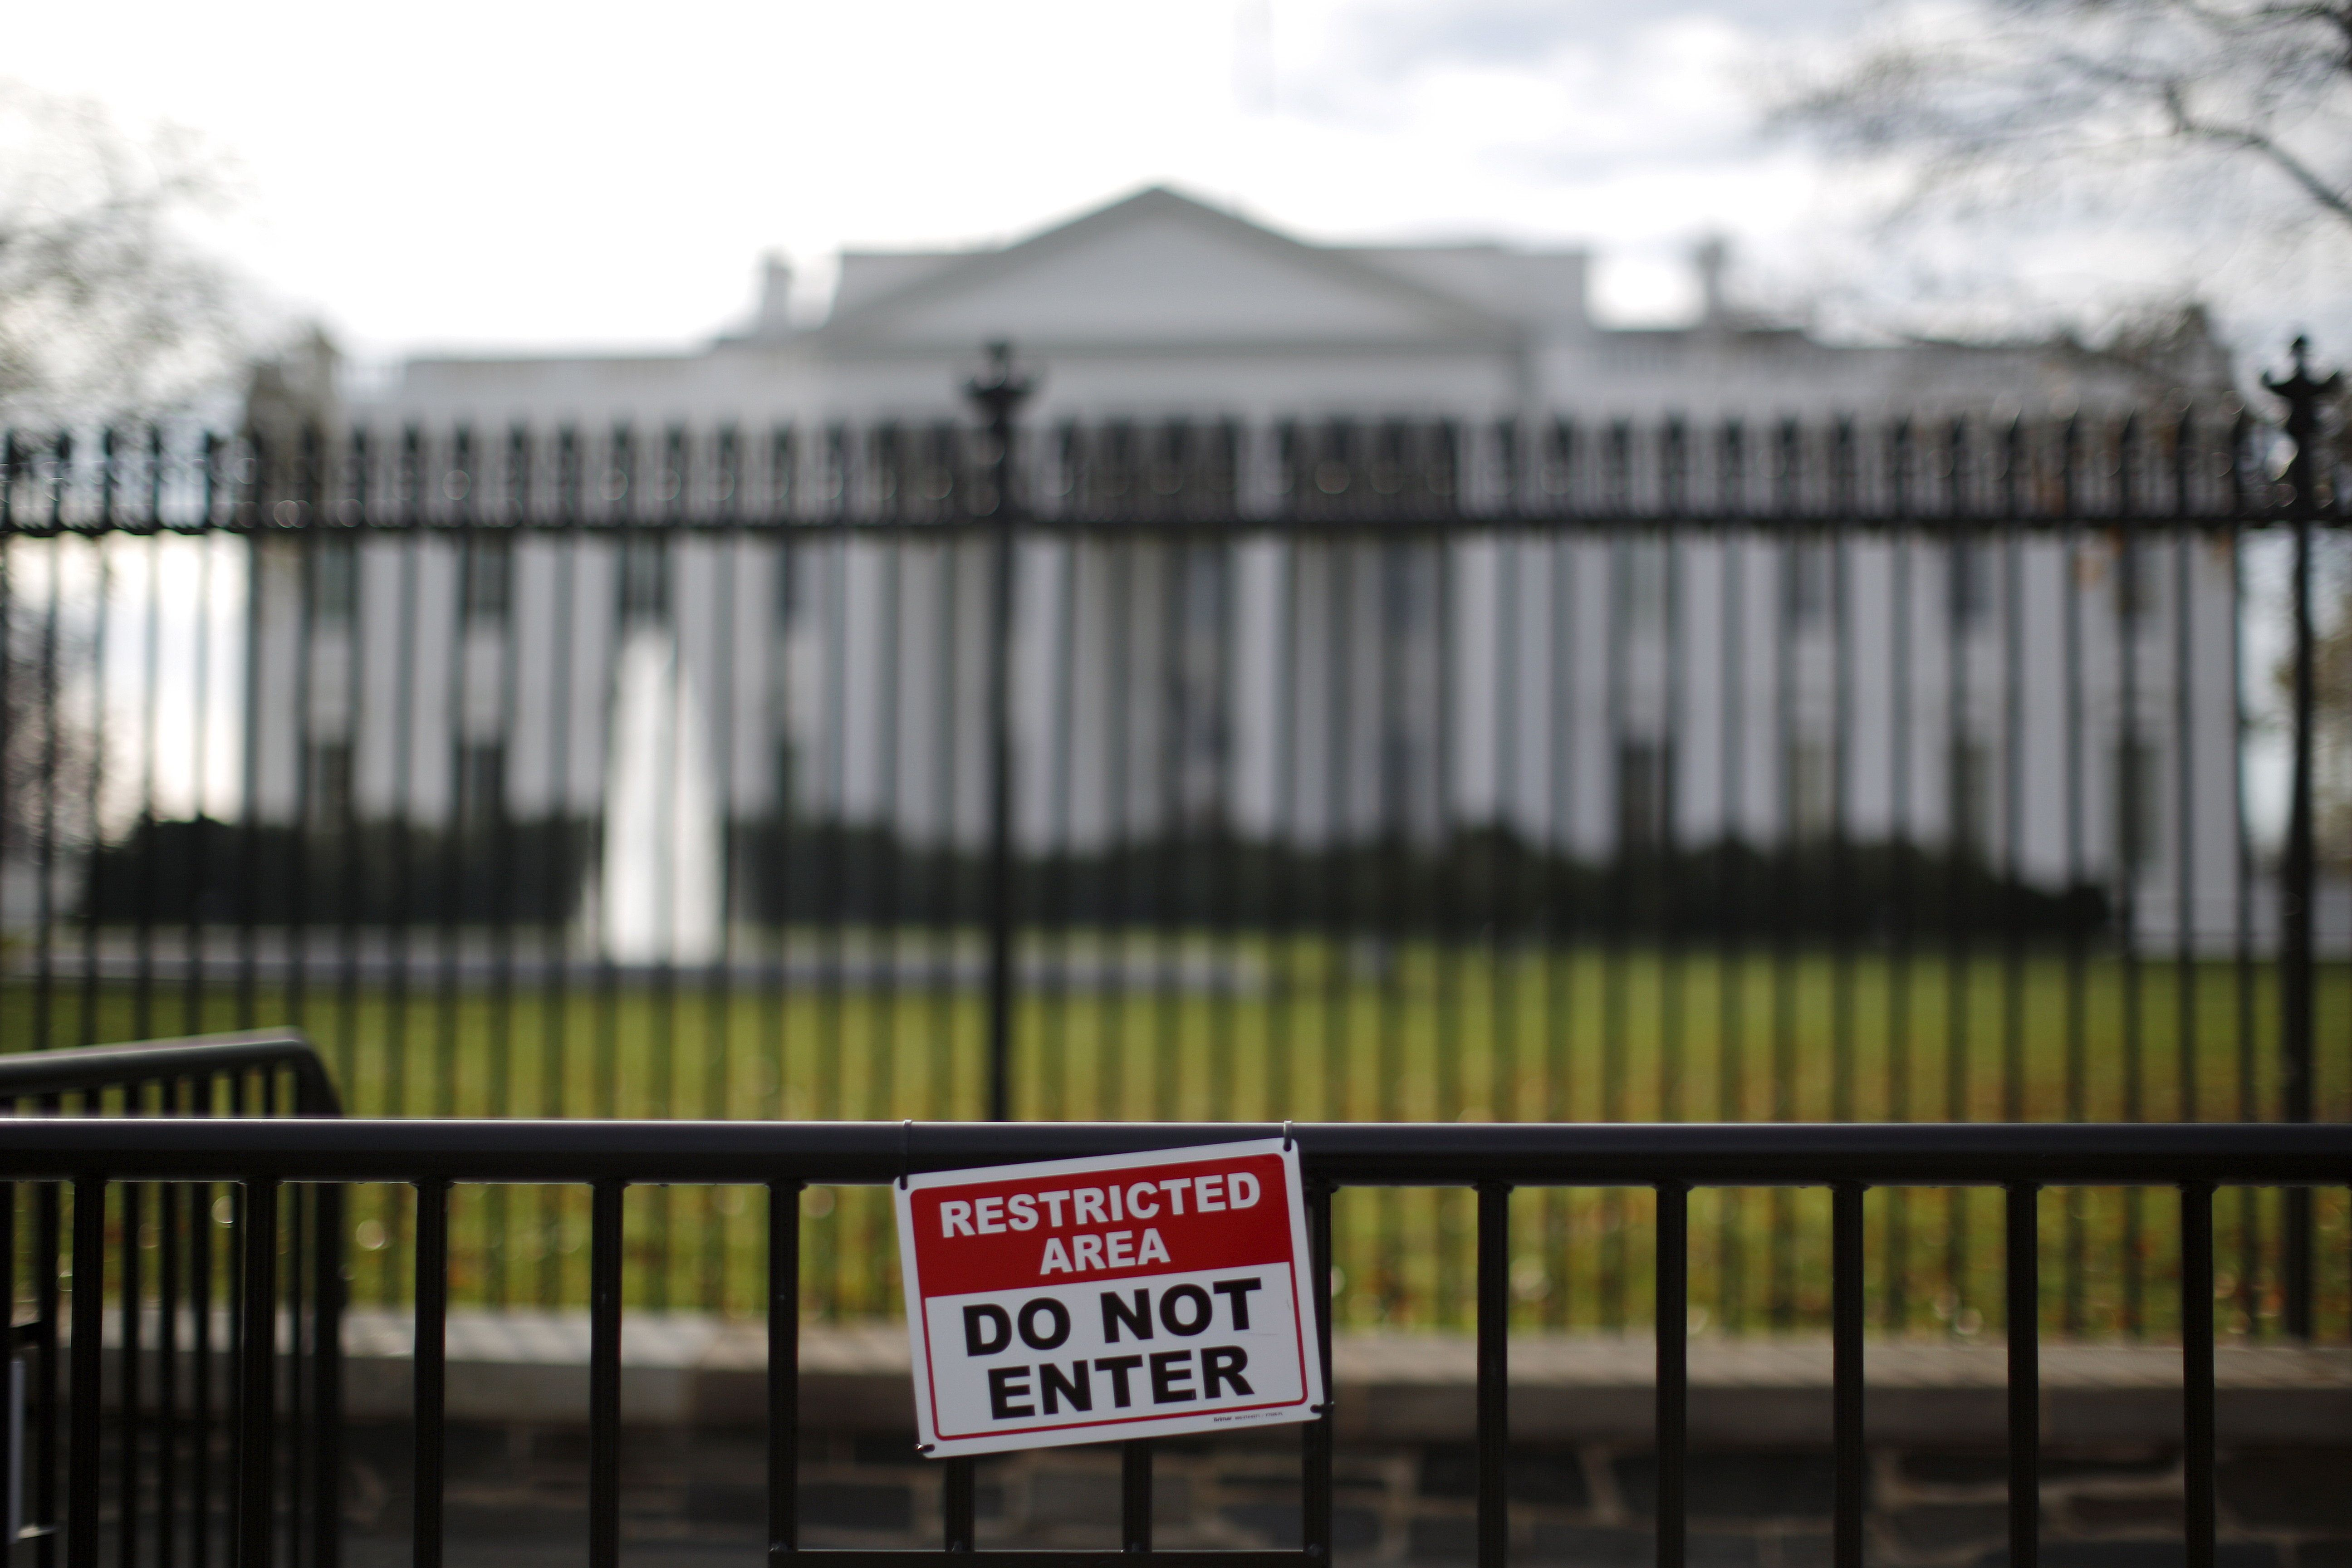 A restricted area sign is seen outside of the White House in Washington November 27, 2015. A man who jumped the White House fence on Thursday, triggering a lockdown of the presidential mansion, was quickly caught and now faces criminal charges, the U.S. Secret Service said. REUTERS/Carlos Barria